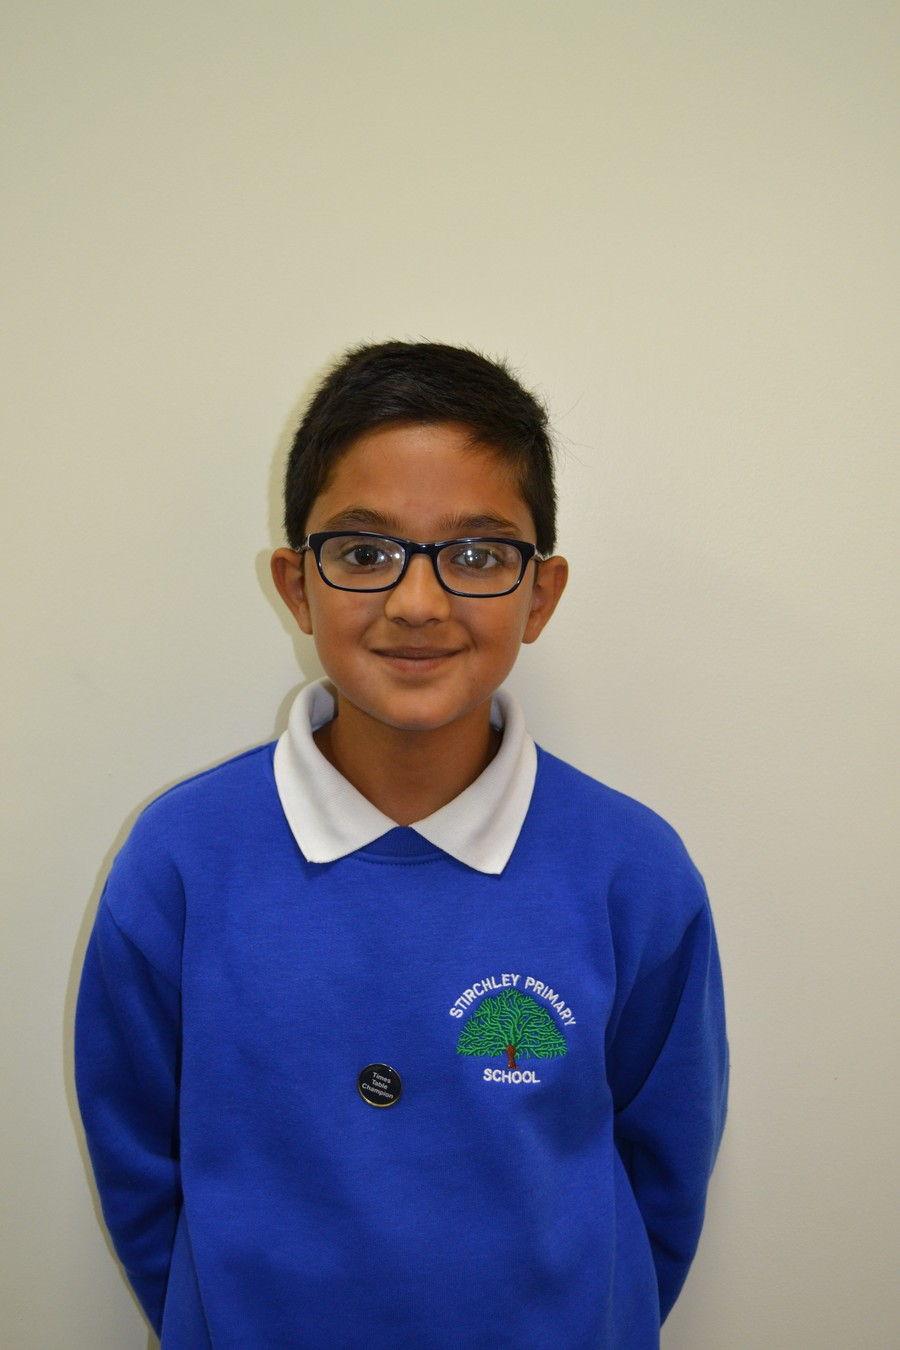 Well done Junaid!